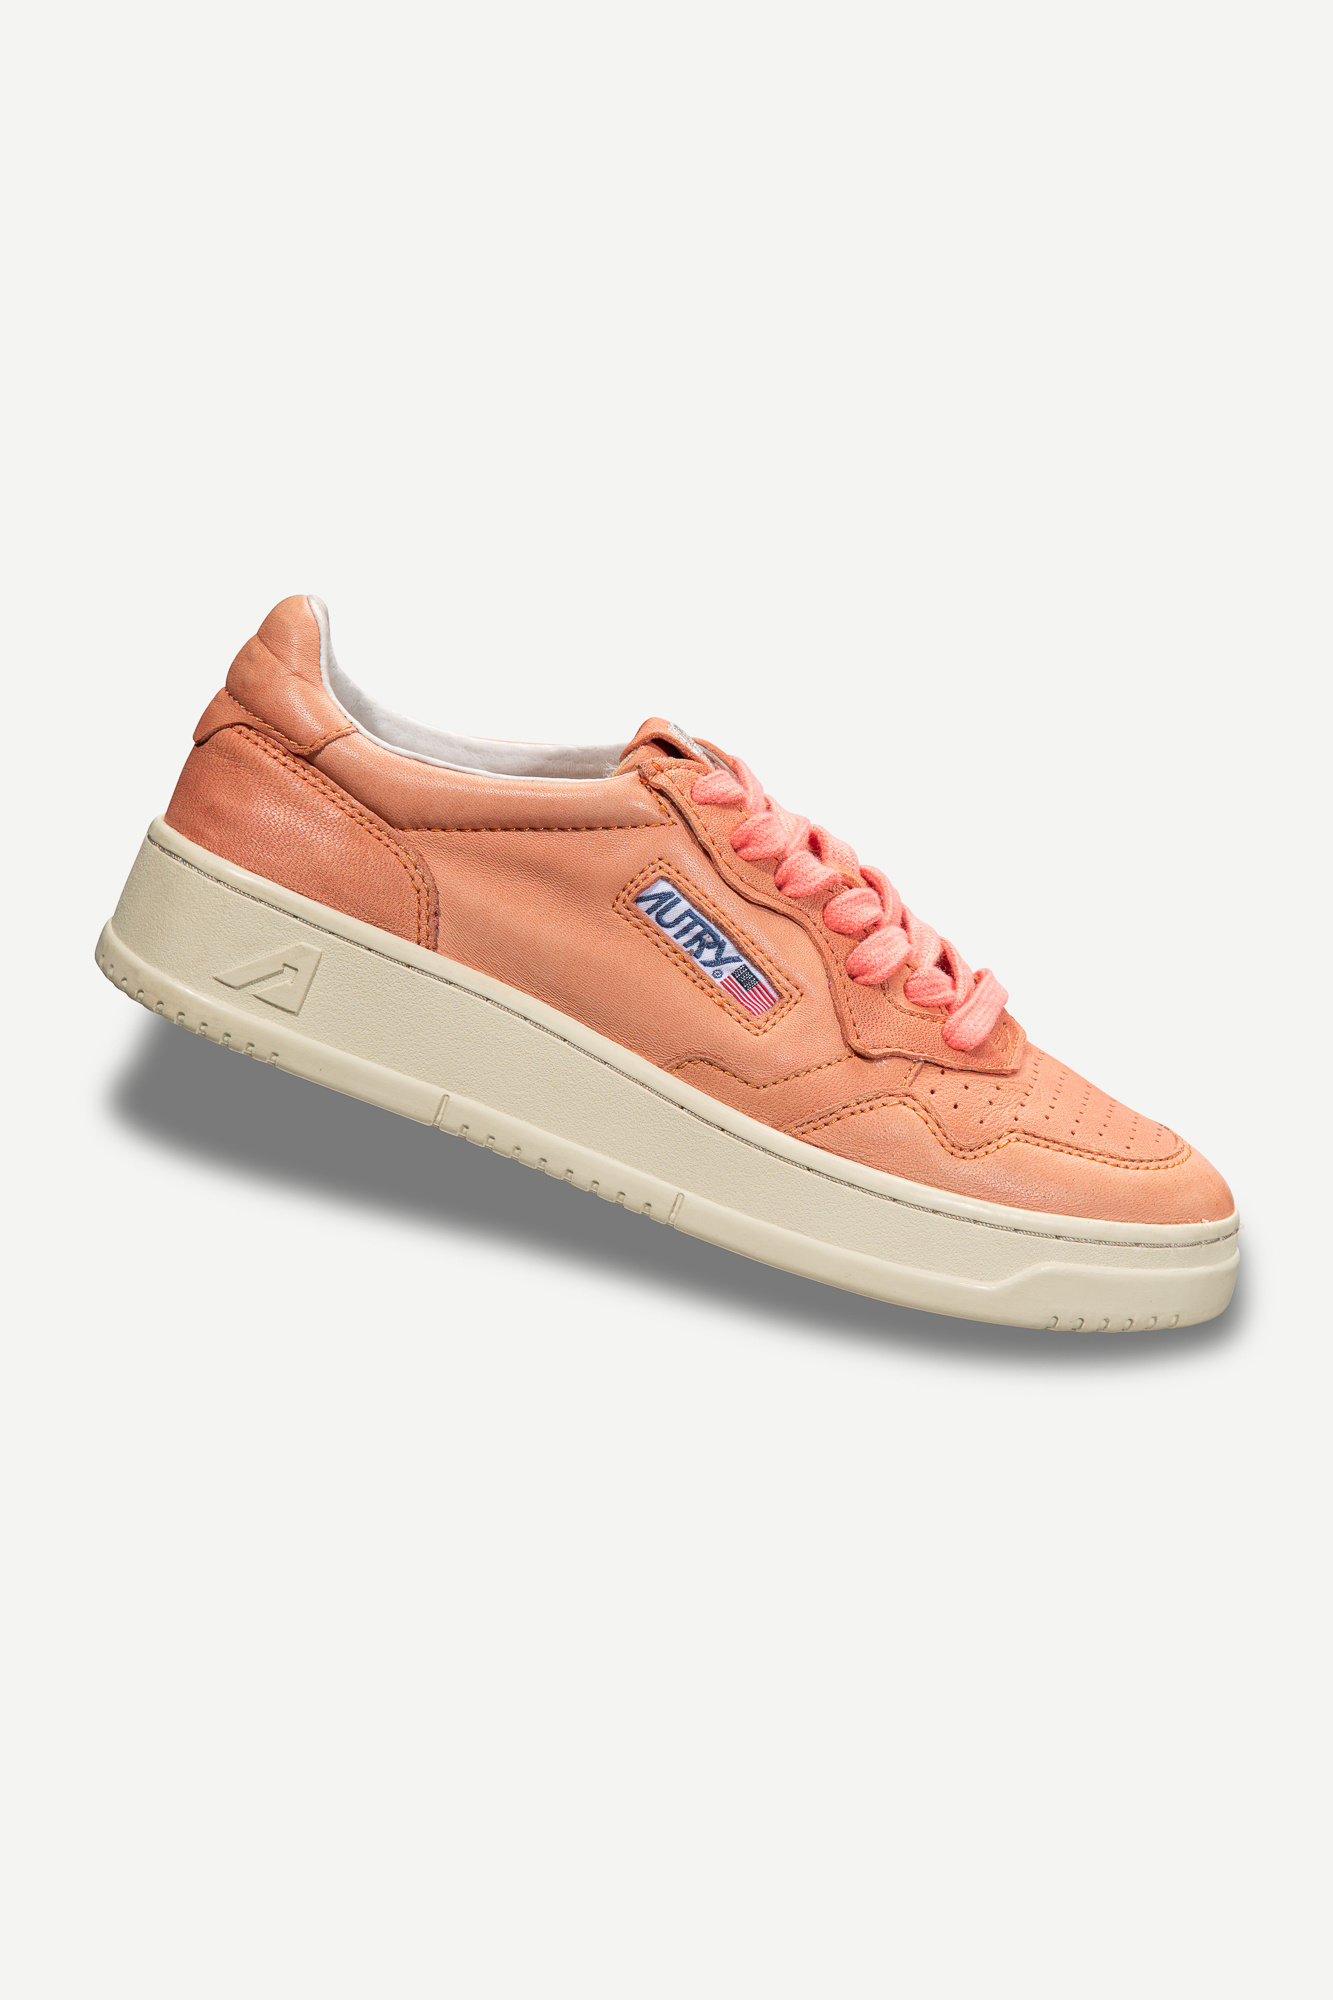 Medalist Low Goat Coral Pink Women-1